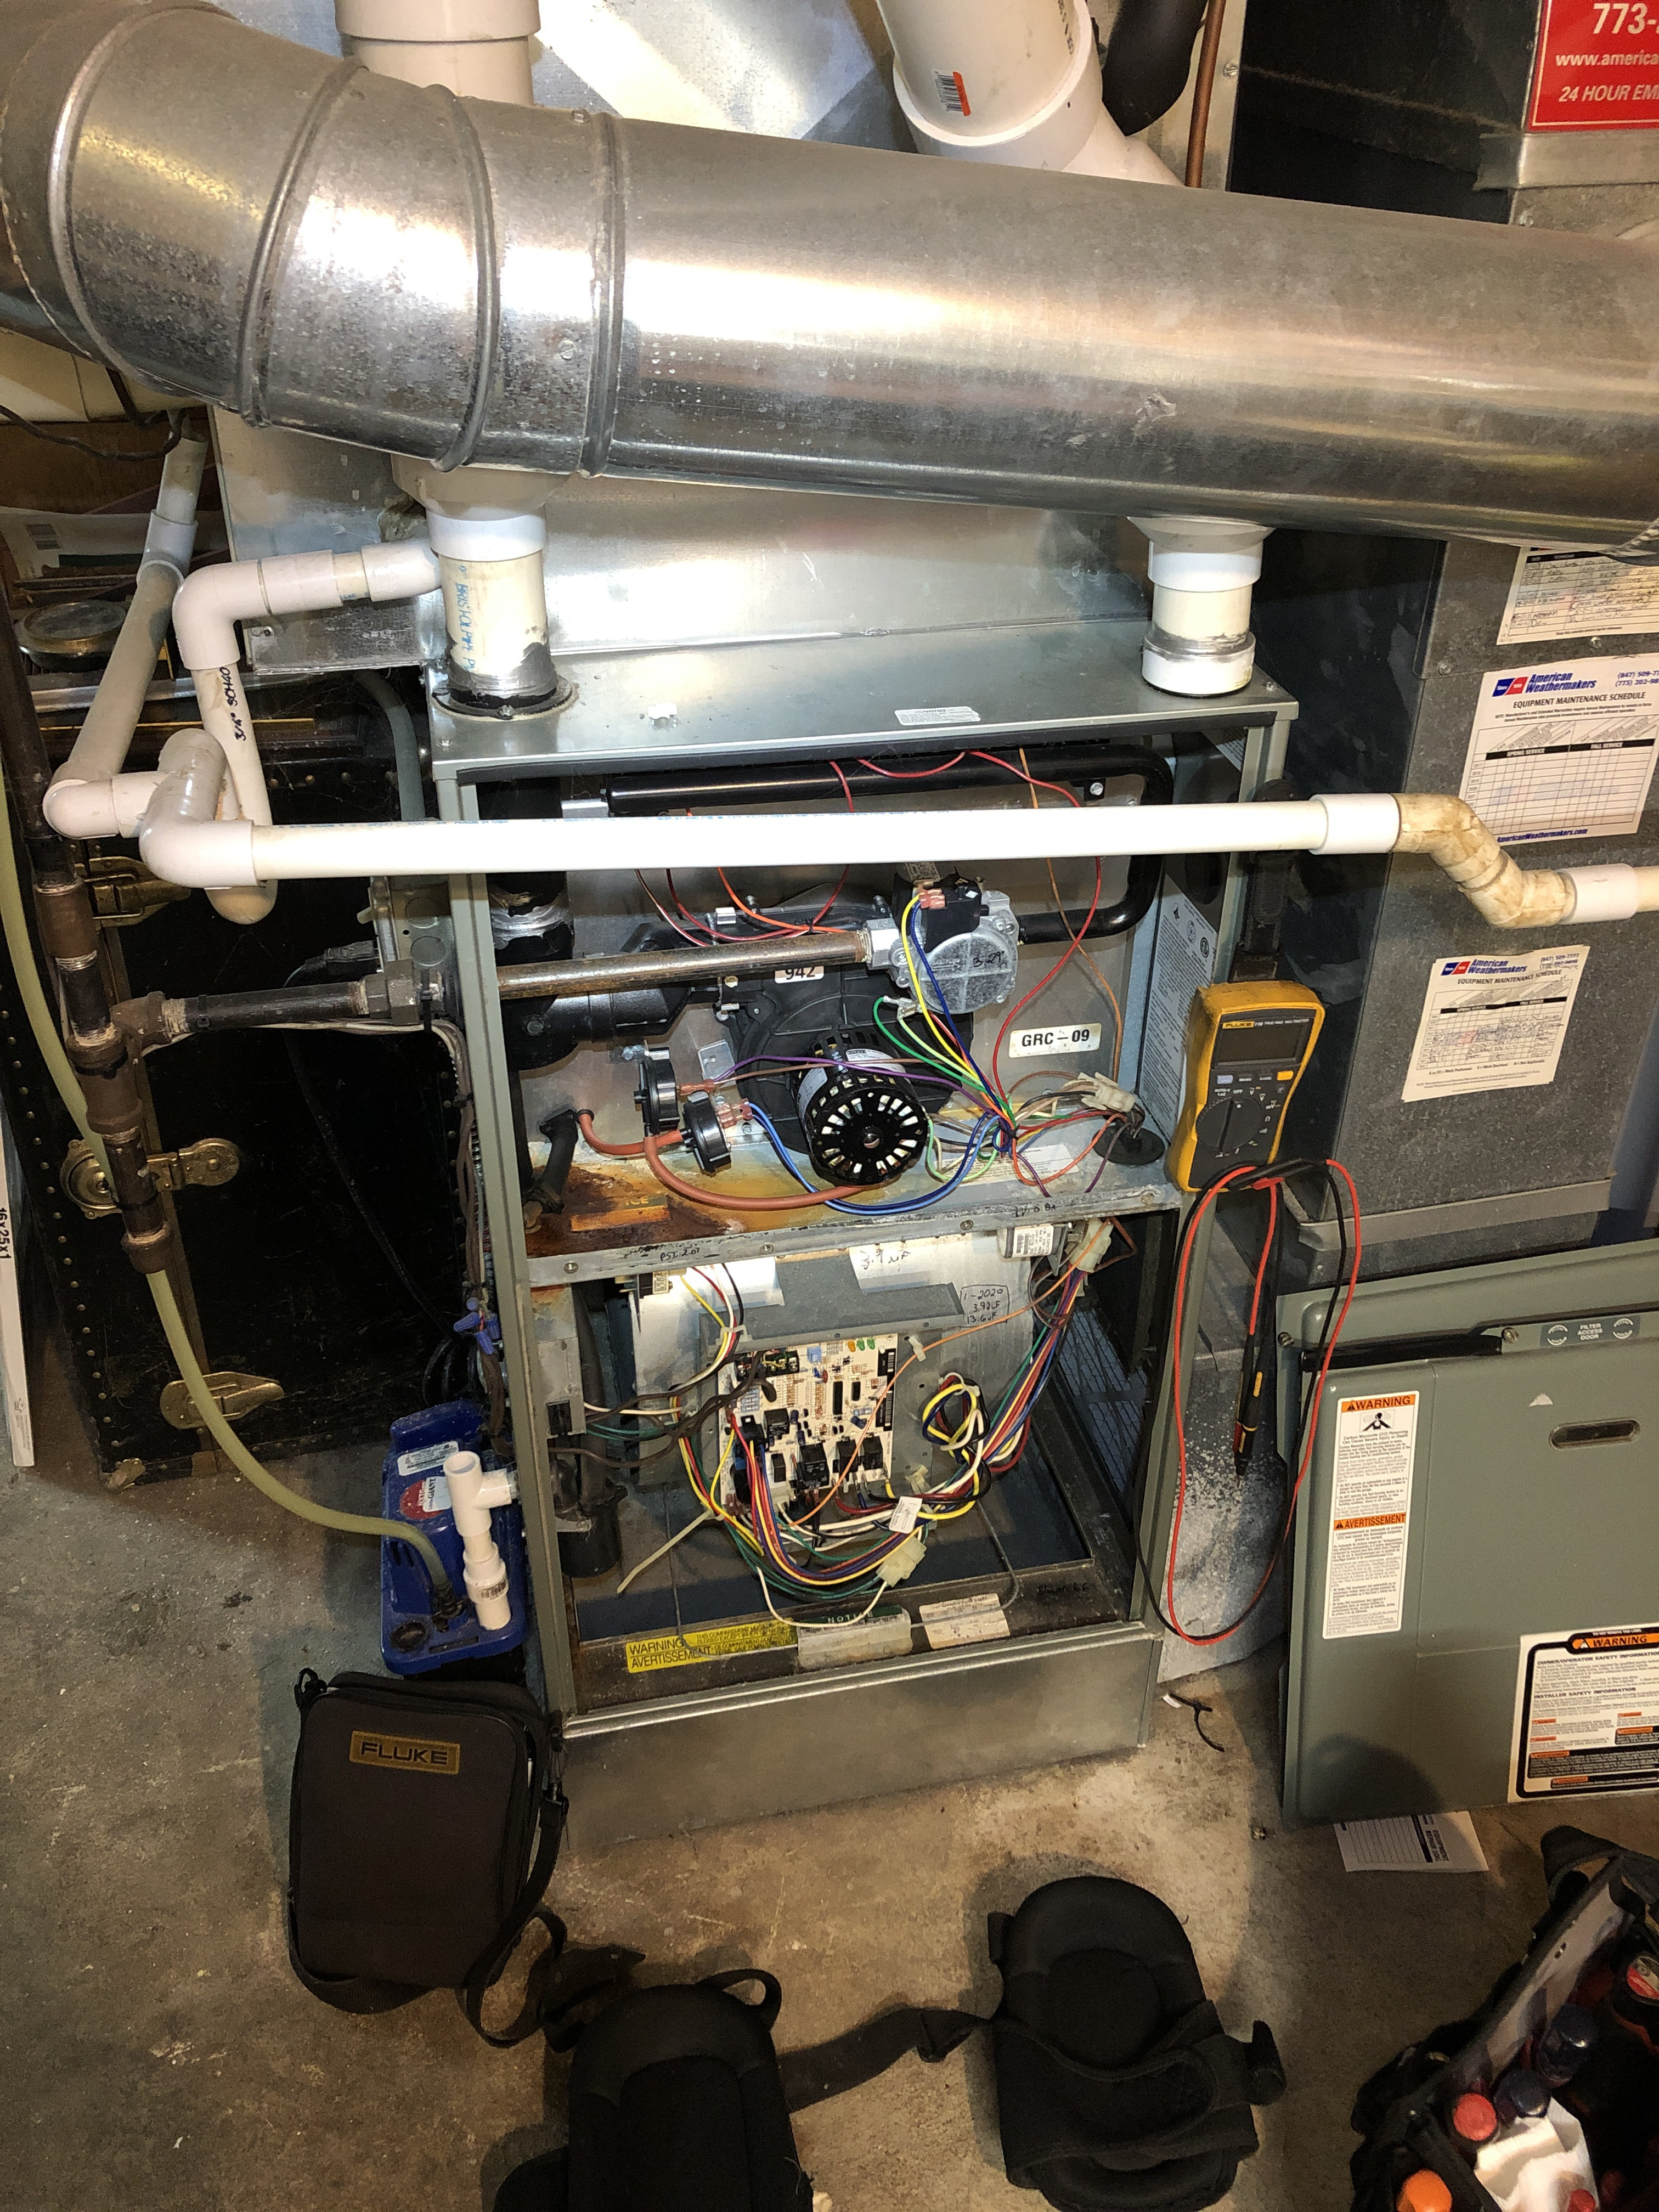 Rheem furnace and Aprilaire humidifier winter service.